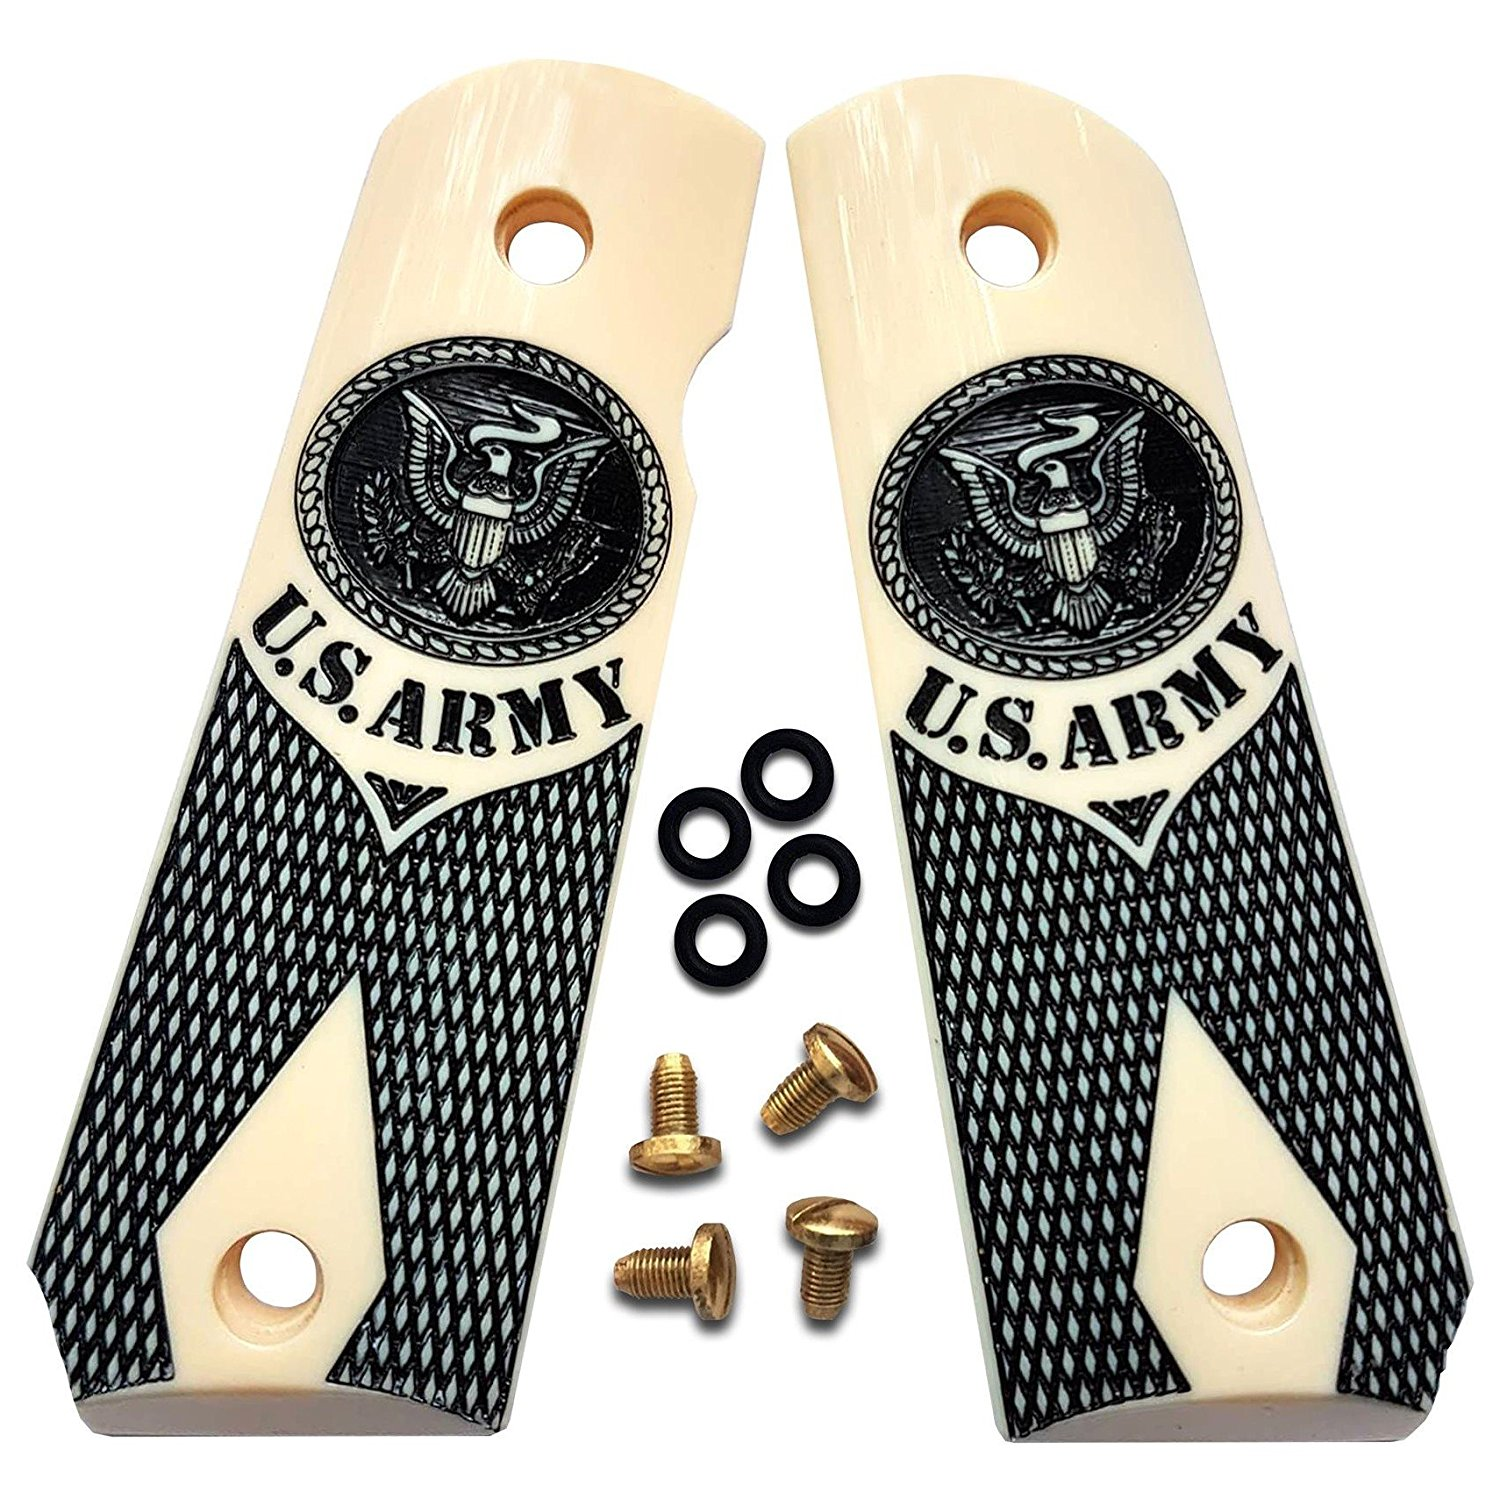 Cheap Ivory Grips 1911, find Ivory Grips 1911 deals on line at